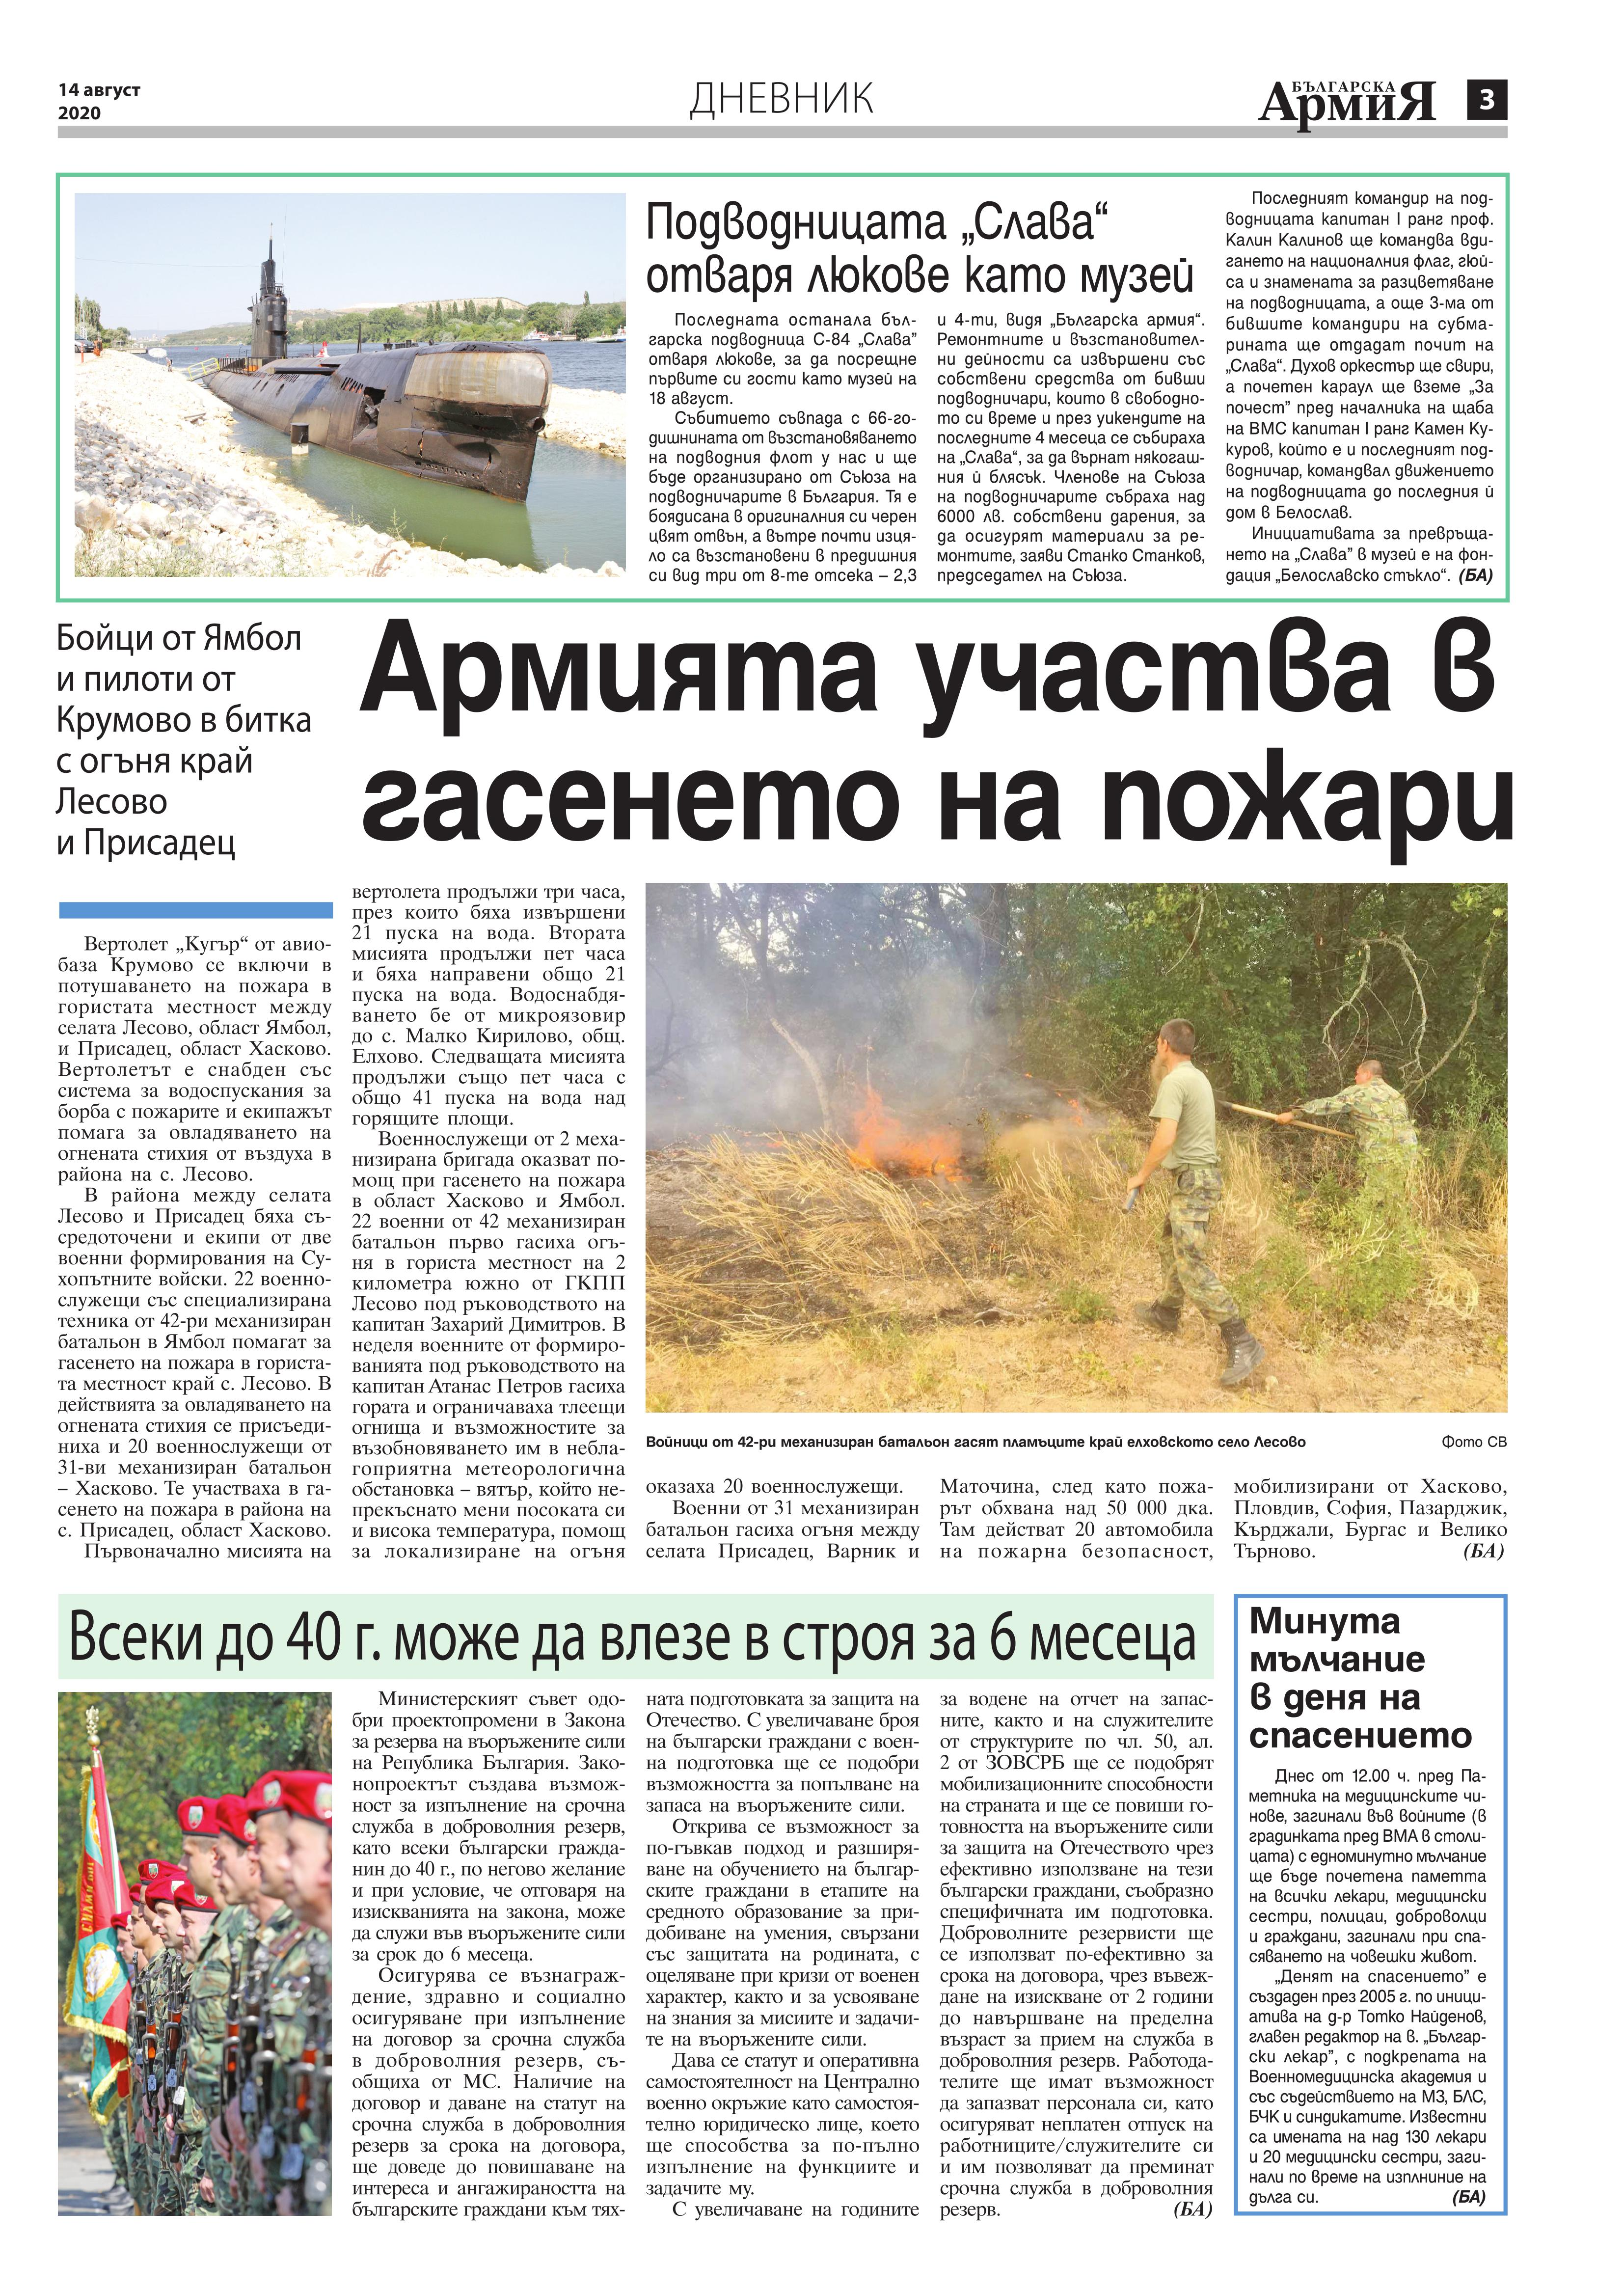 https://armymedia.bg/wp-content/uploads/2015/06/03.page1_-147.jpg